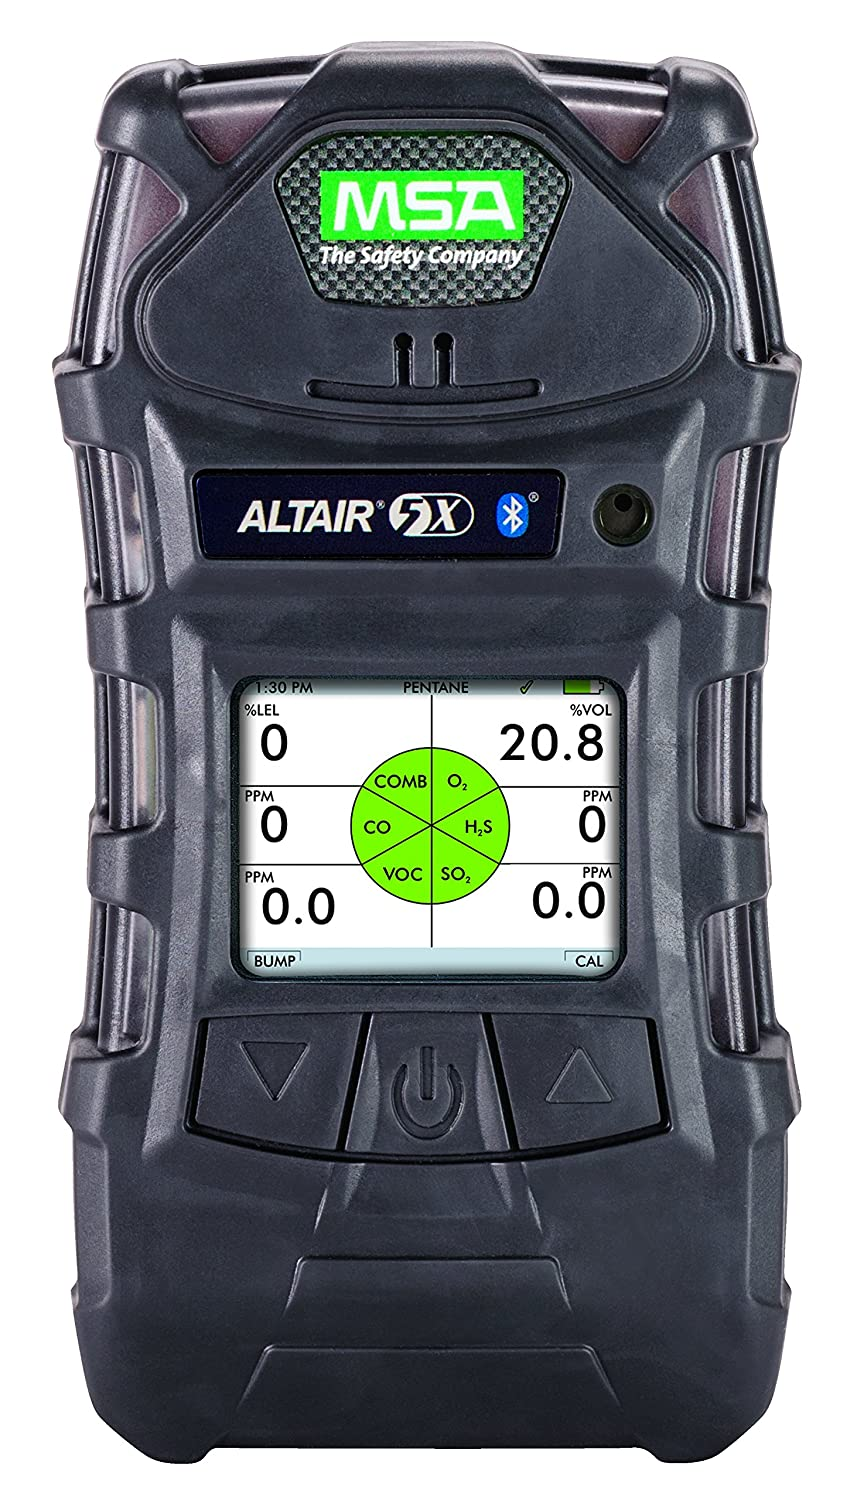 MSA 10116924 ALTAIR 5X Gas Detector, Monochrome Display Screen, LEL, O2, CO, H2S: Hobbyist Metal Detectors: Amazon.com: Industrial & Scientific